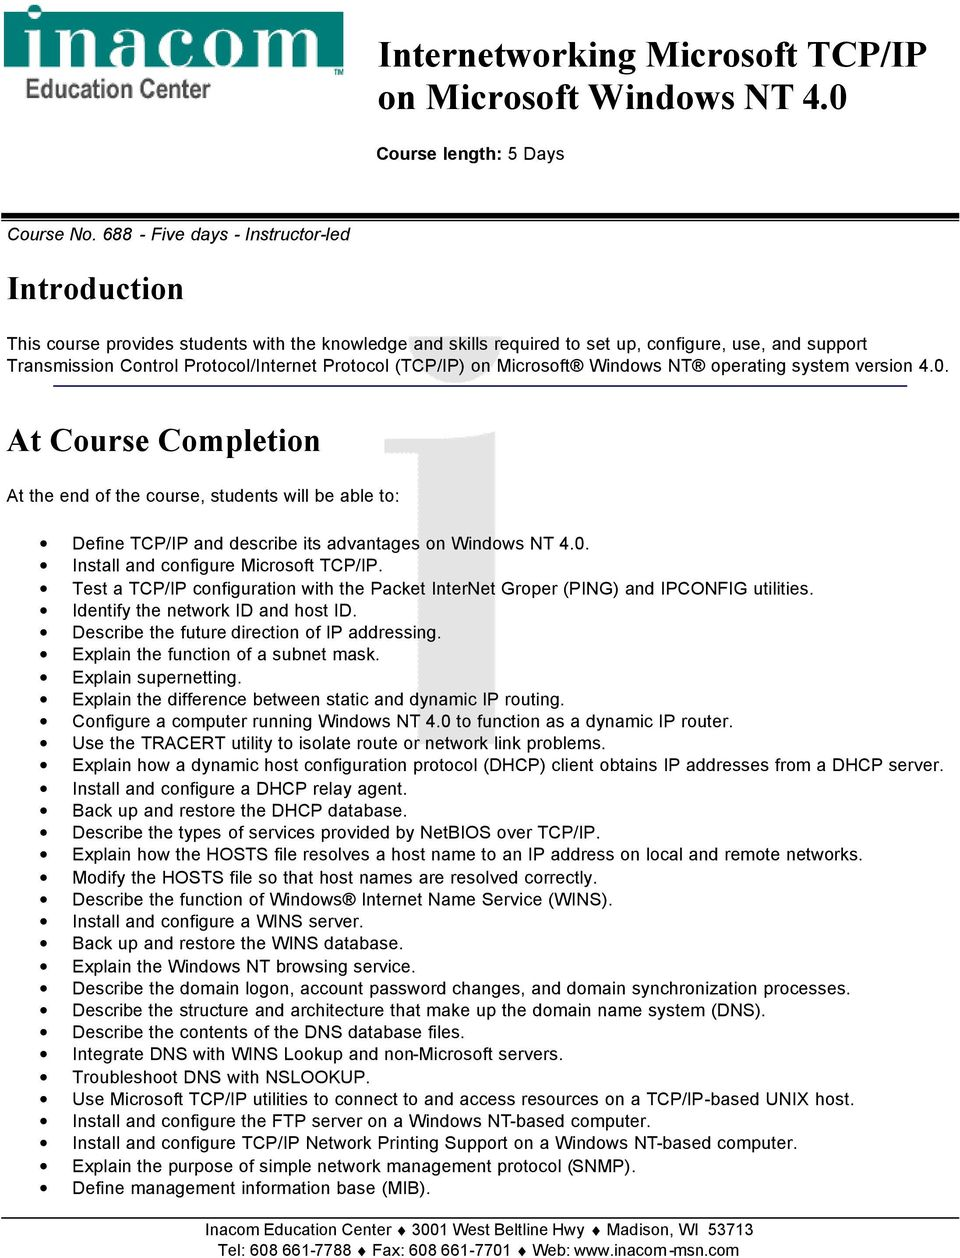 Protocol (TCP/IP) on Microsoft Windows NT operating system version 4.0.